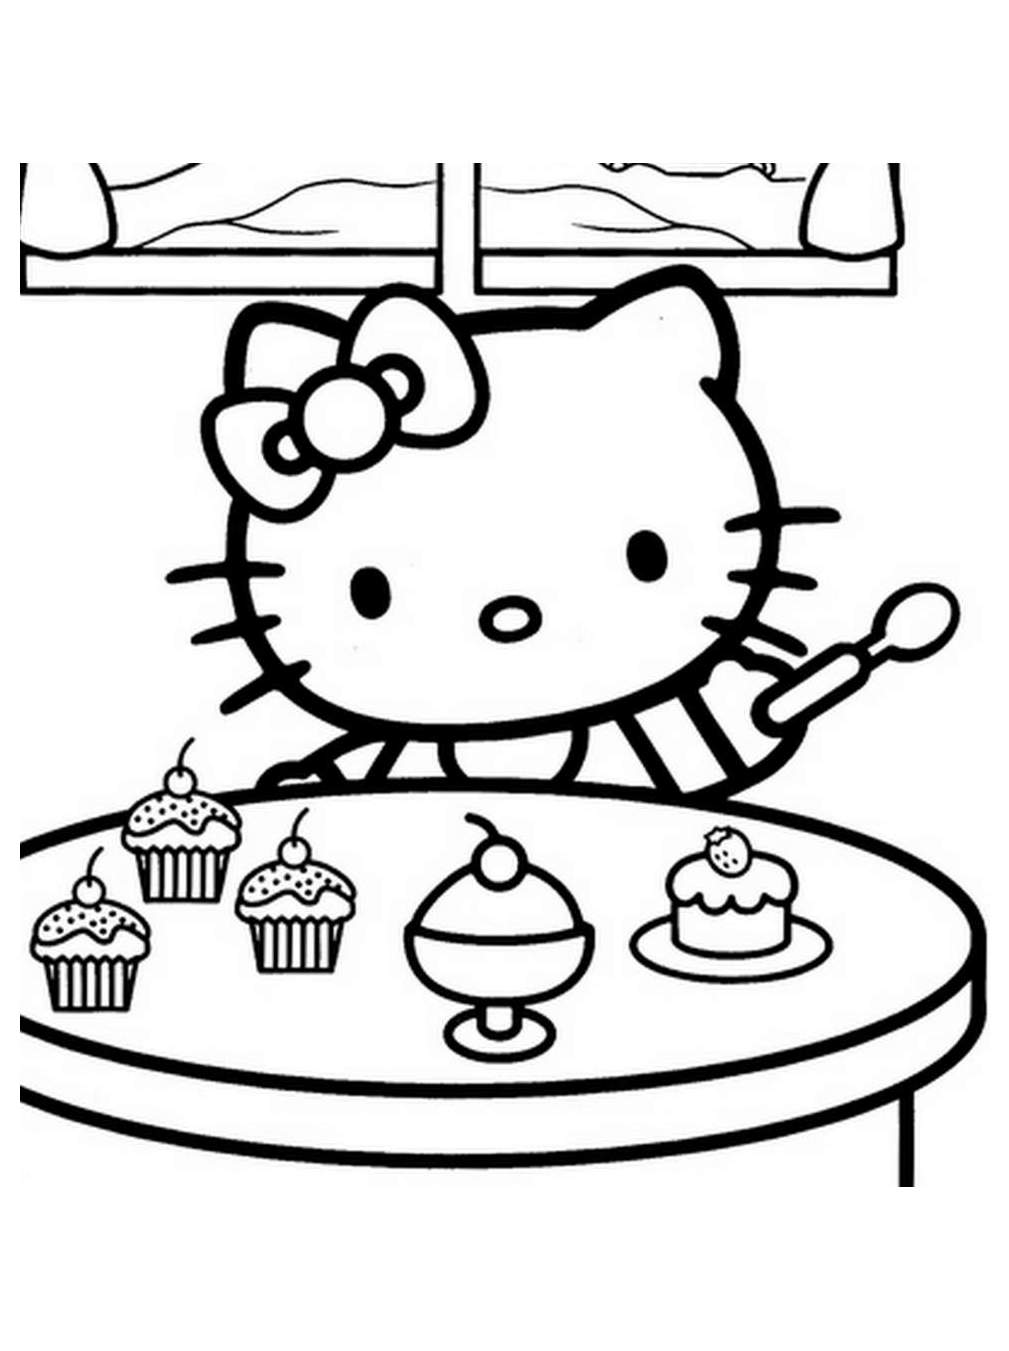 It's just a photo of Amazing Hello Kitty Coloring Images